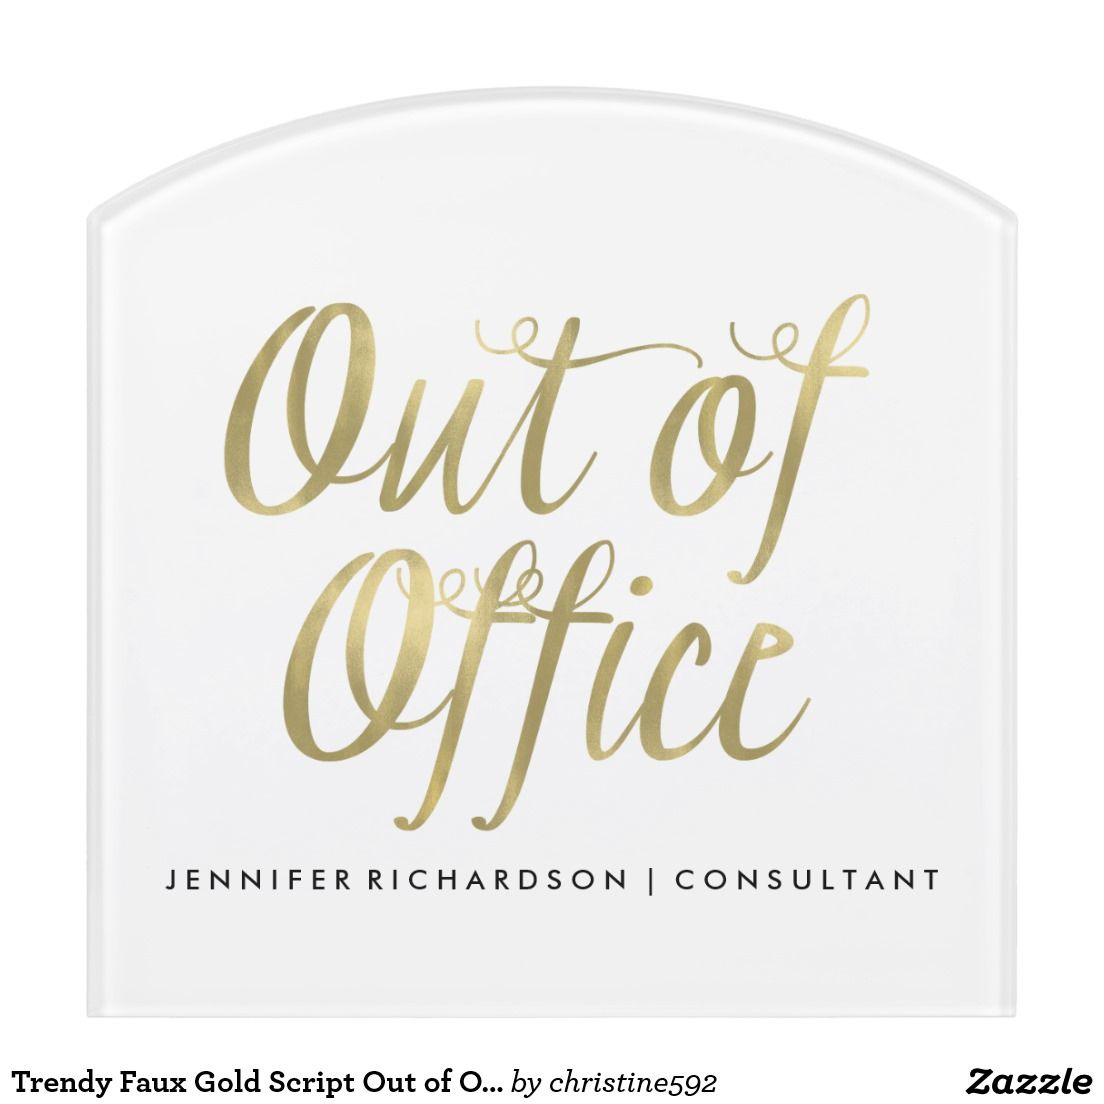 Out of office sign template demirediffusion out of office signs for door arts arts maxwellsz